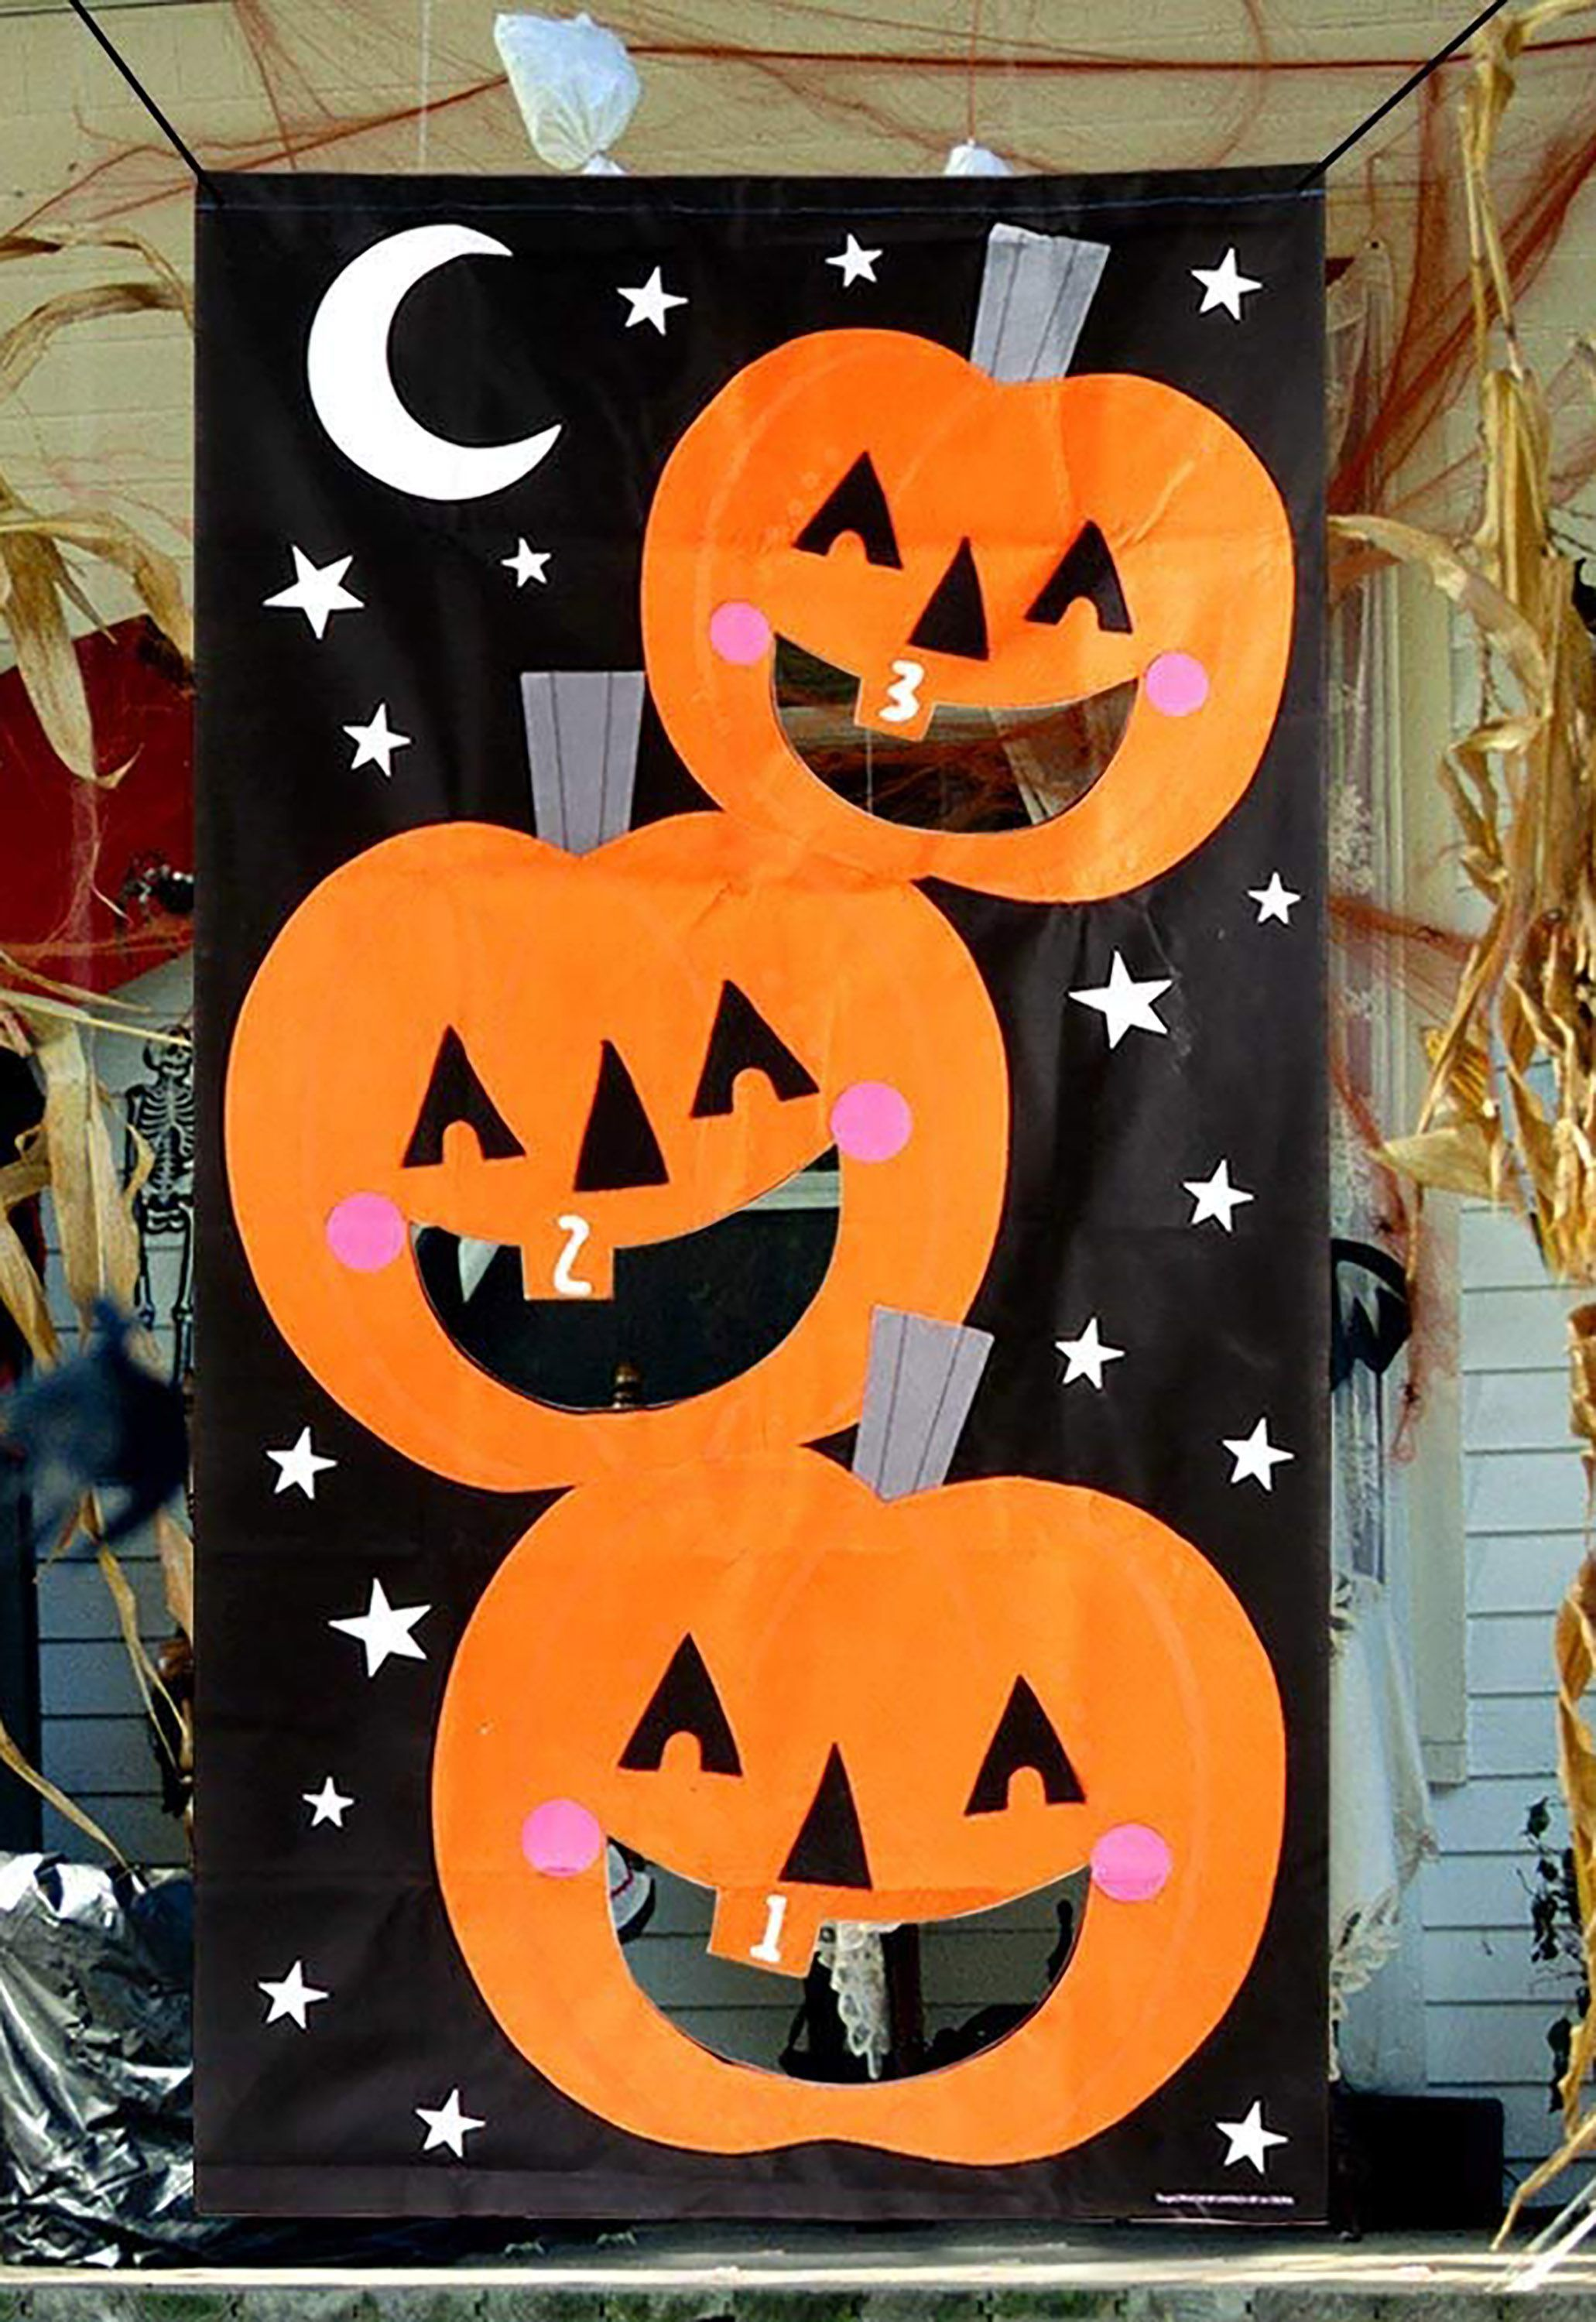 19 fun halloween party games for kids - best diy halloween party